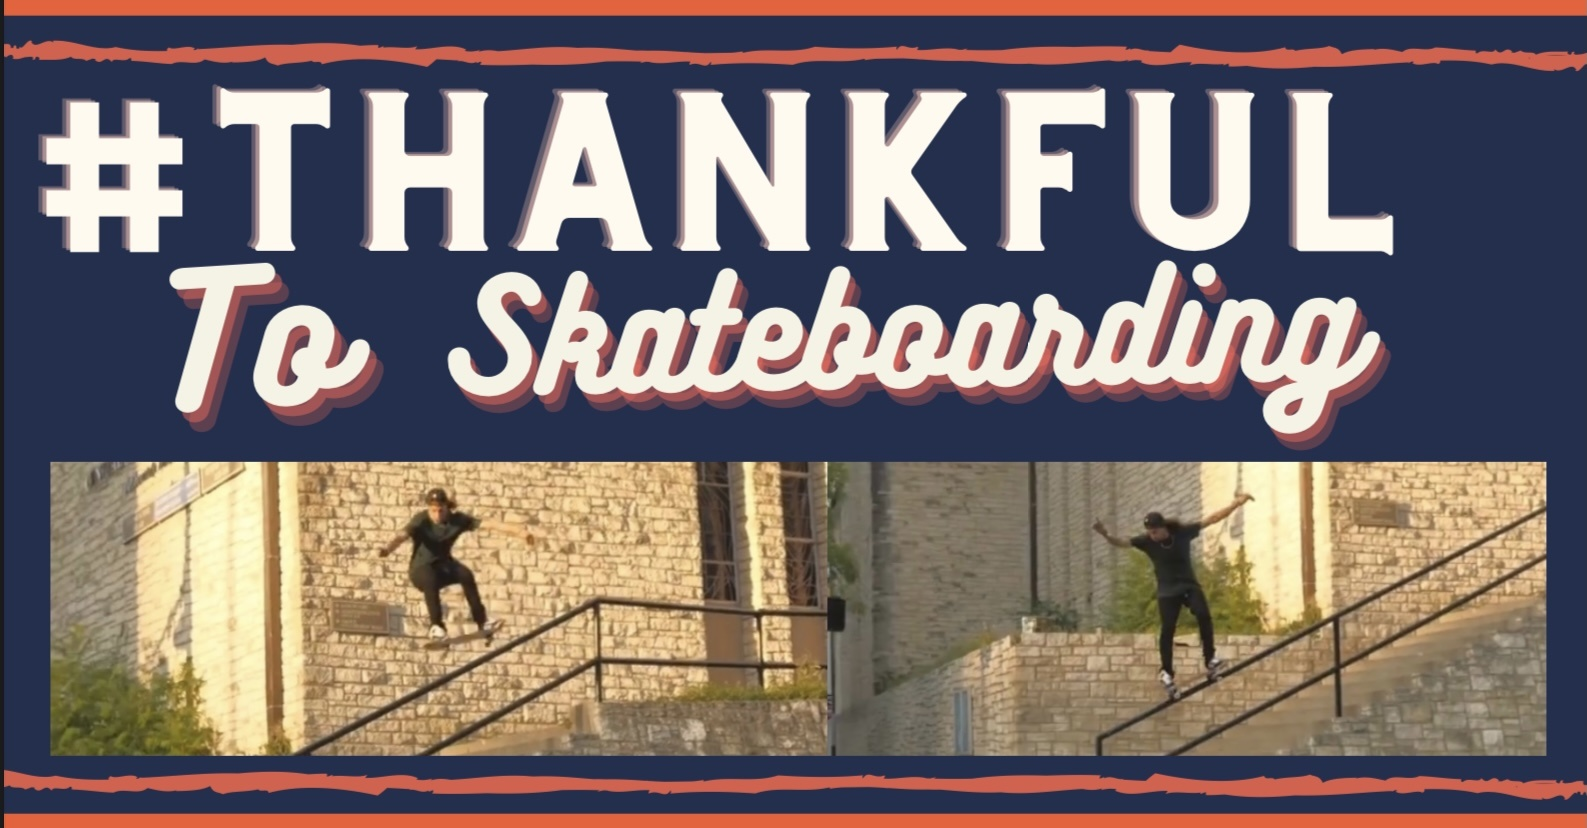 Wolf Pat Film's: Thankful to Skateboarding